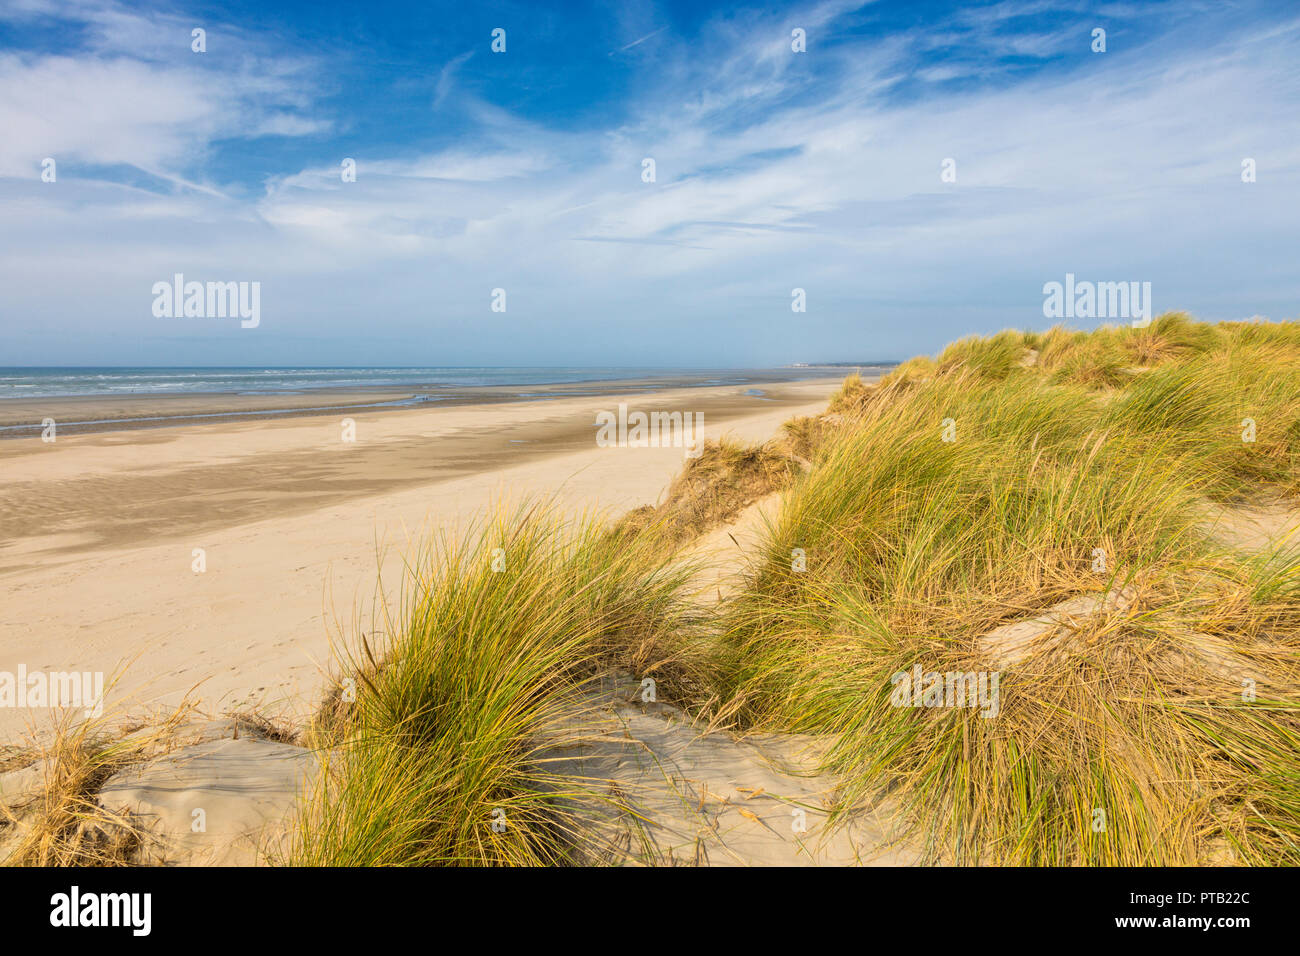 North Sea beach and dunes at Le Touquet-Paris Plage, France - Stock Image